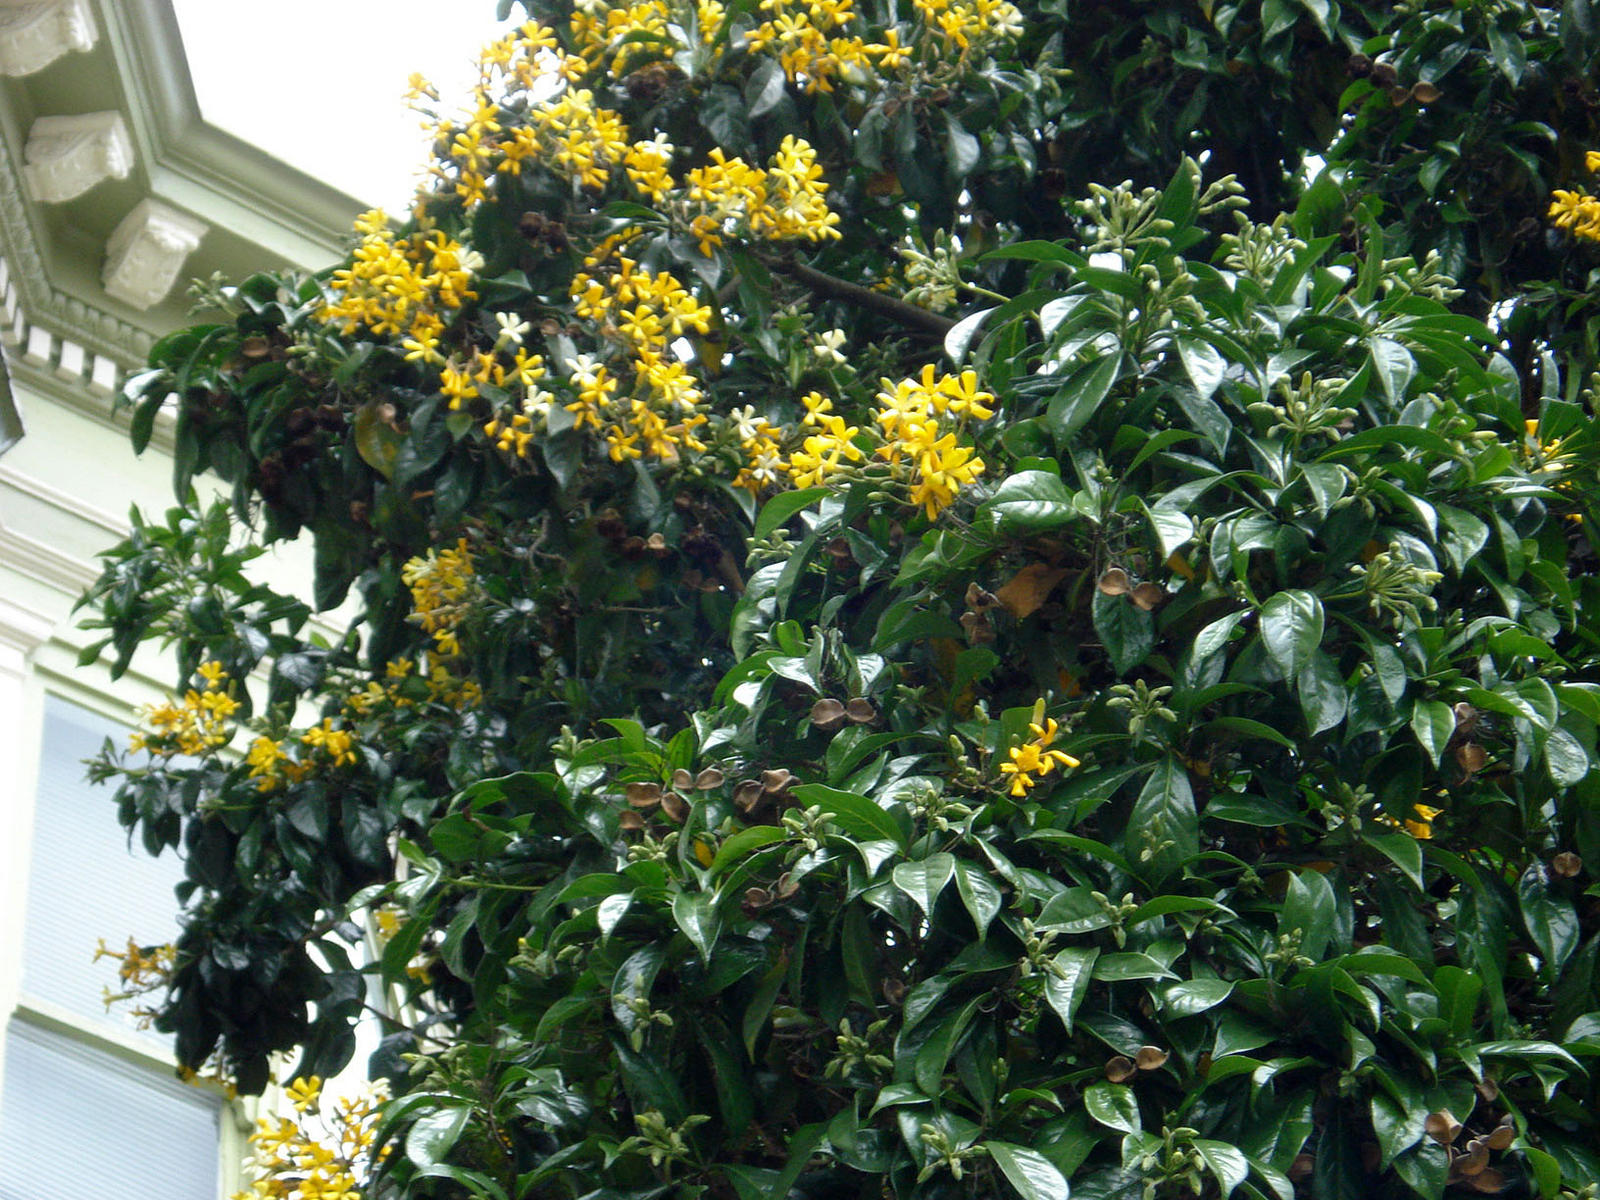 Big tree with yellow flowers san francisco ubc botanical garden 1149g mightylinksfo